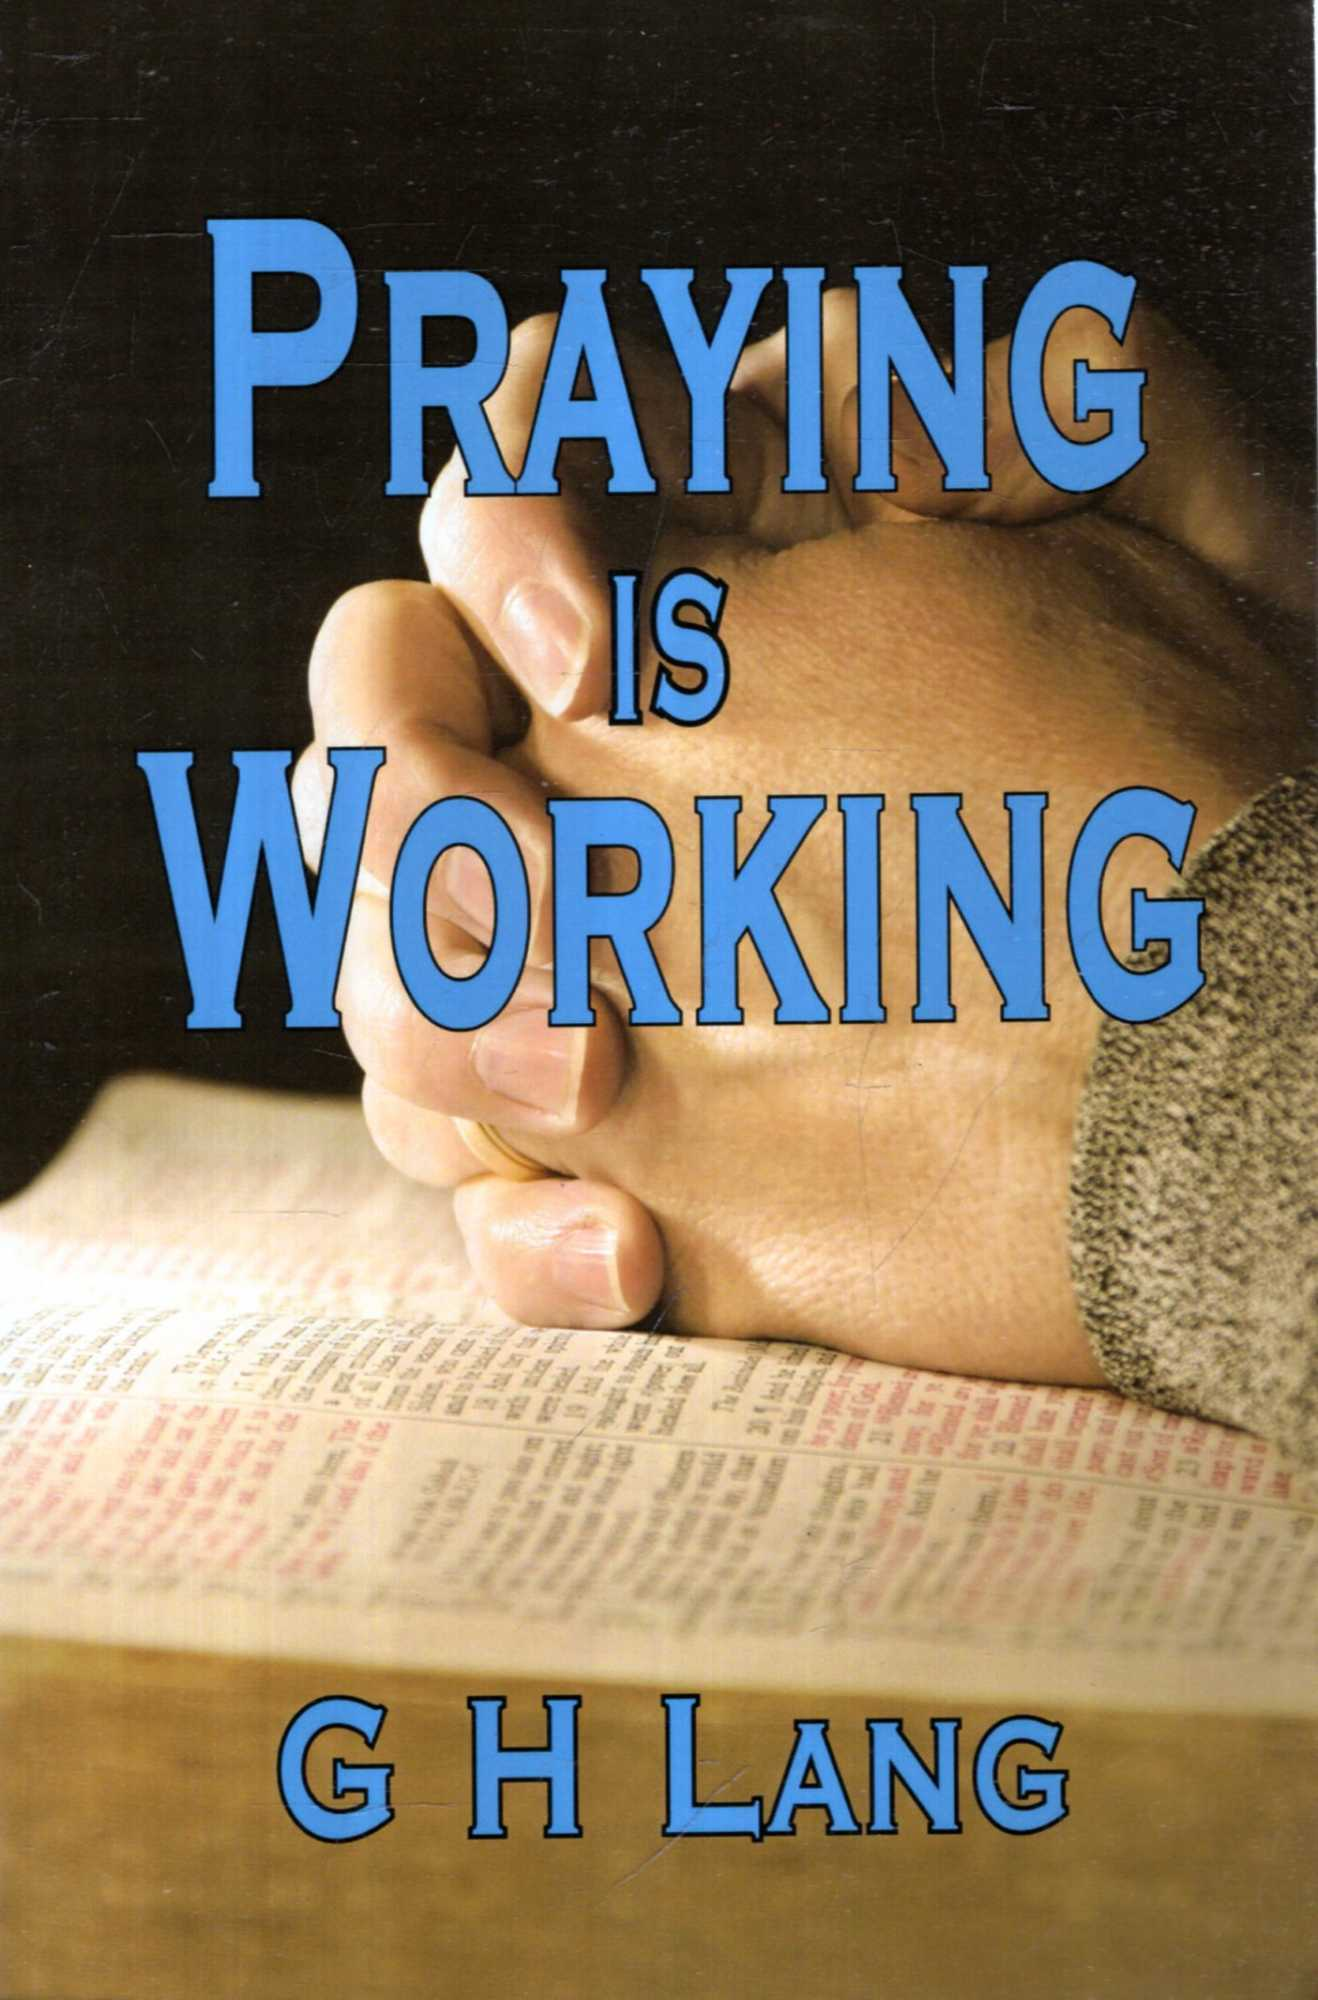 Image for Praying is Working